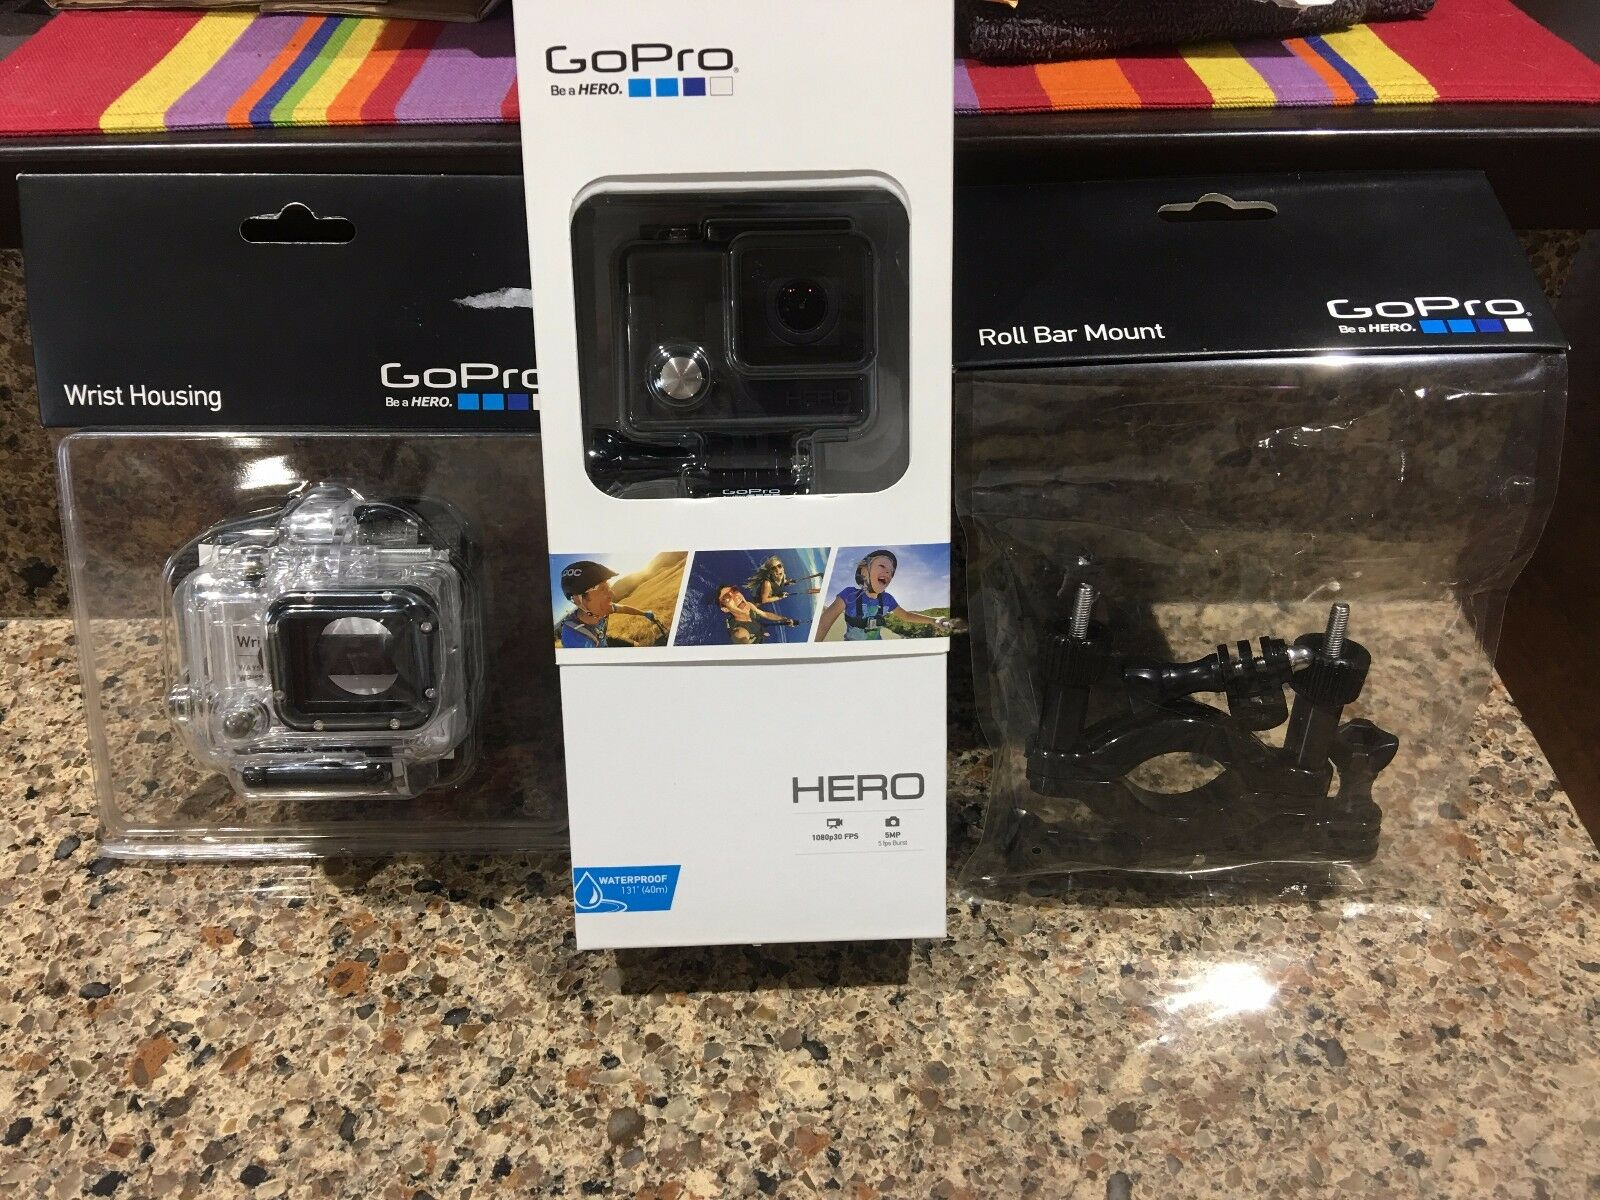 GoPro Hero Action Camera HWBL1 CHDHA-301 With Extras Bundle action bundle camera extras gopro hero hwbl1 with